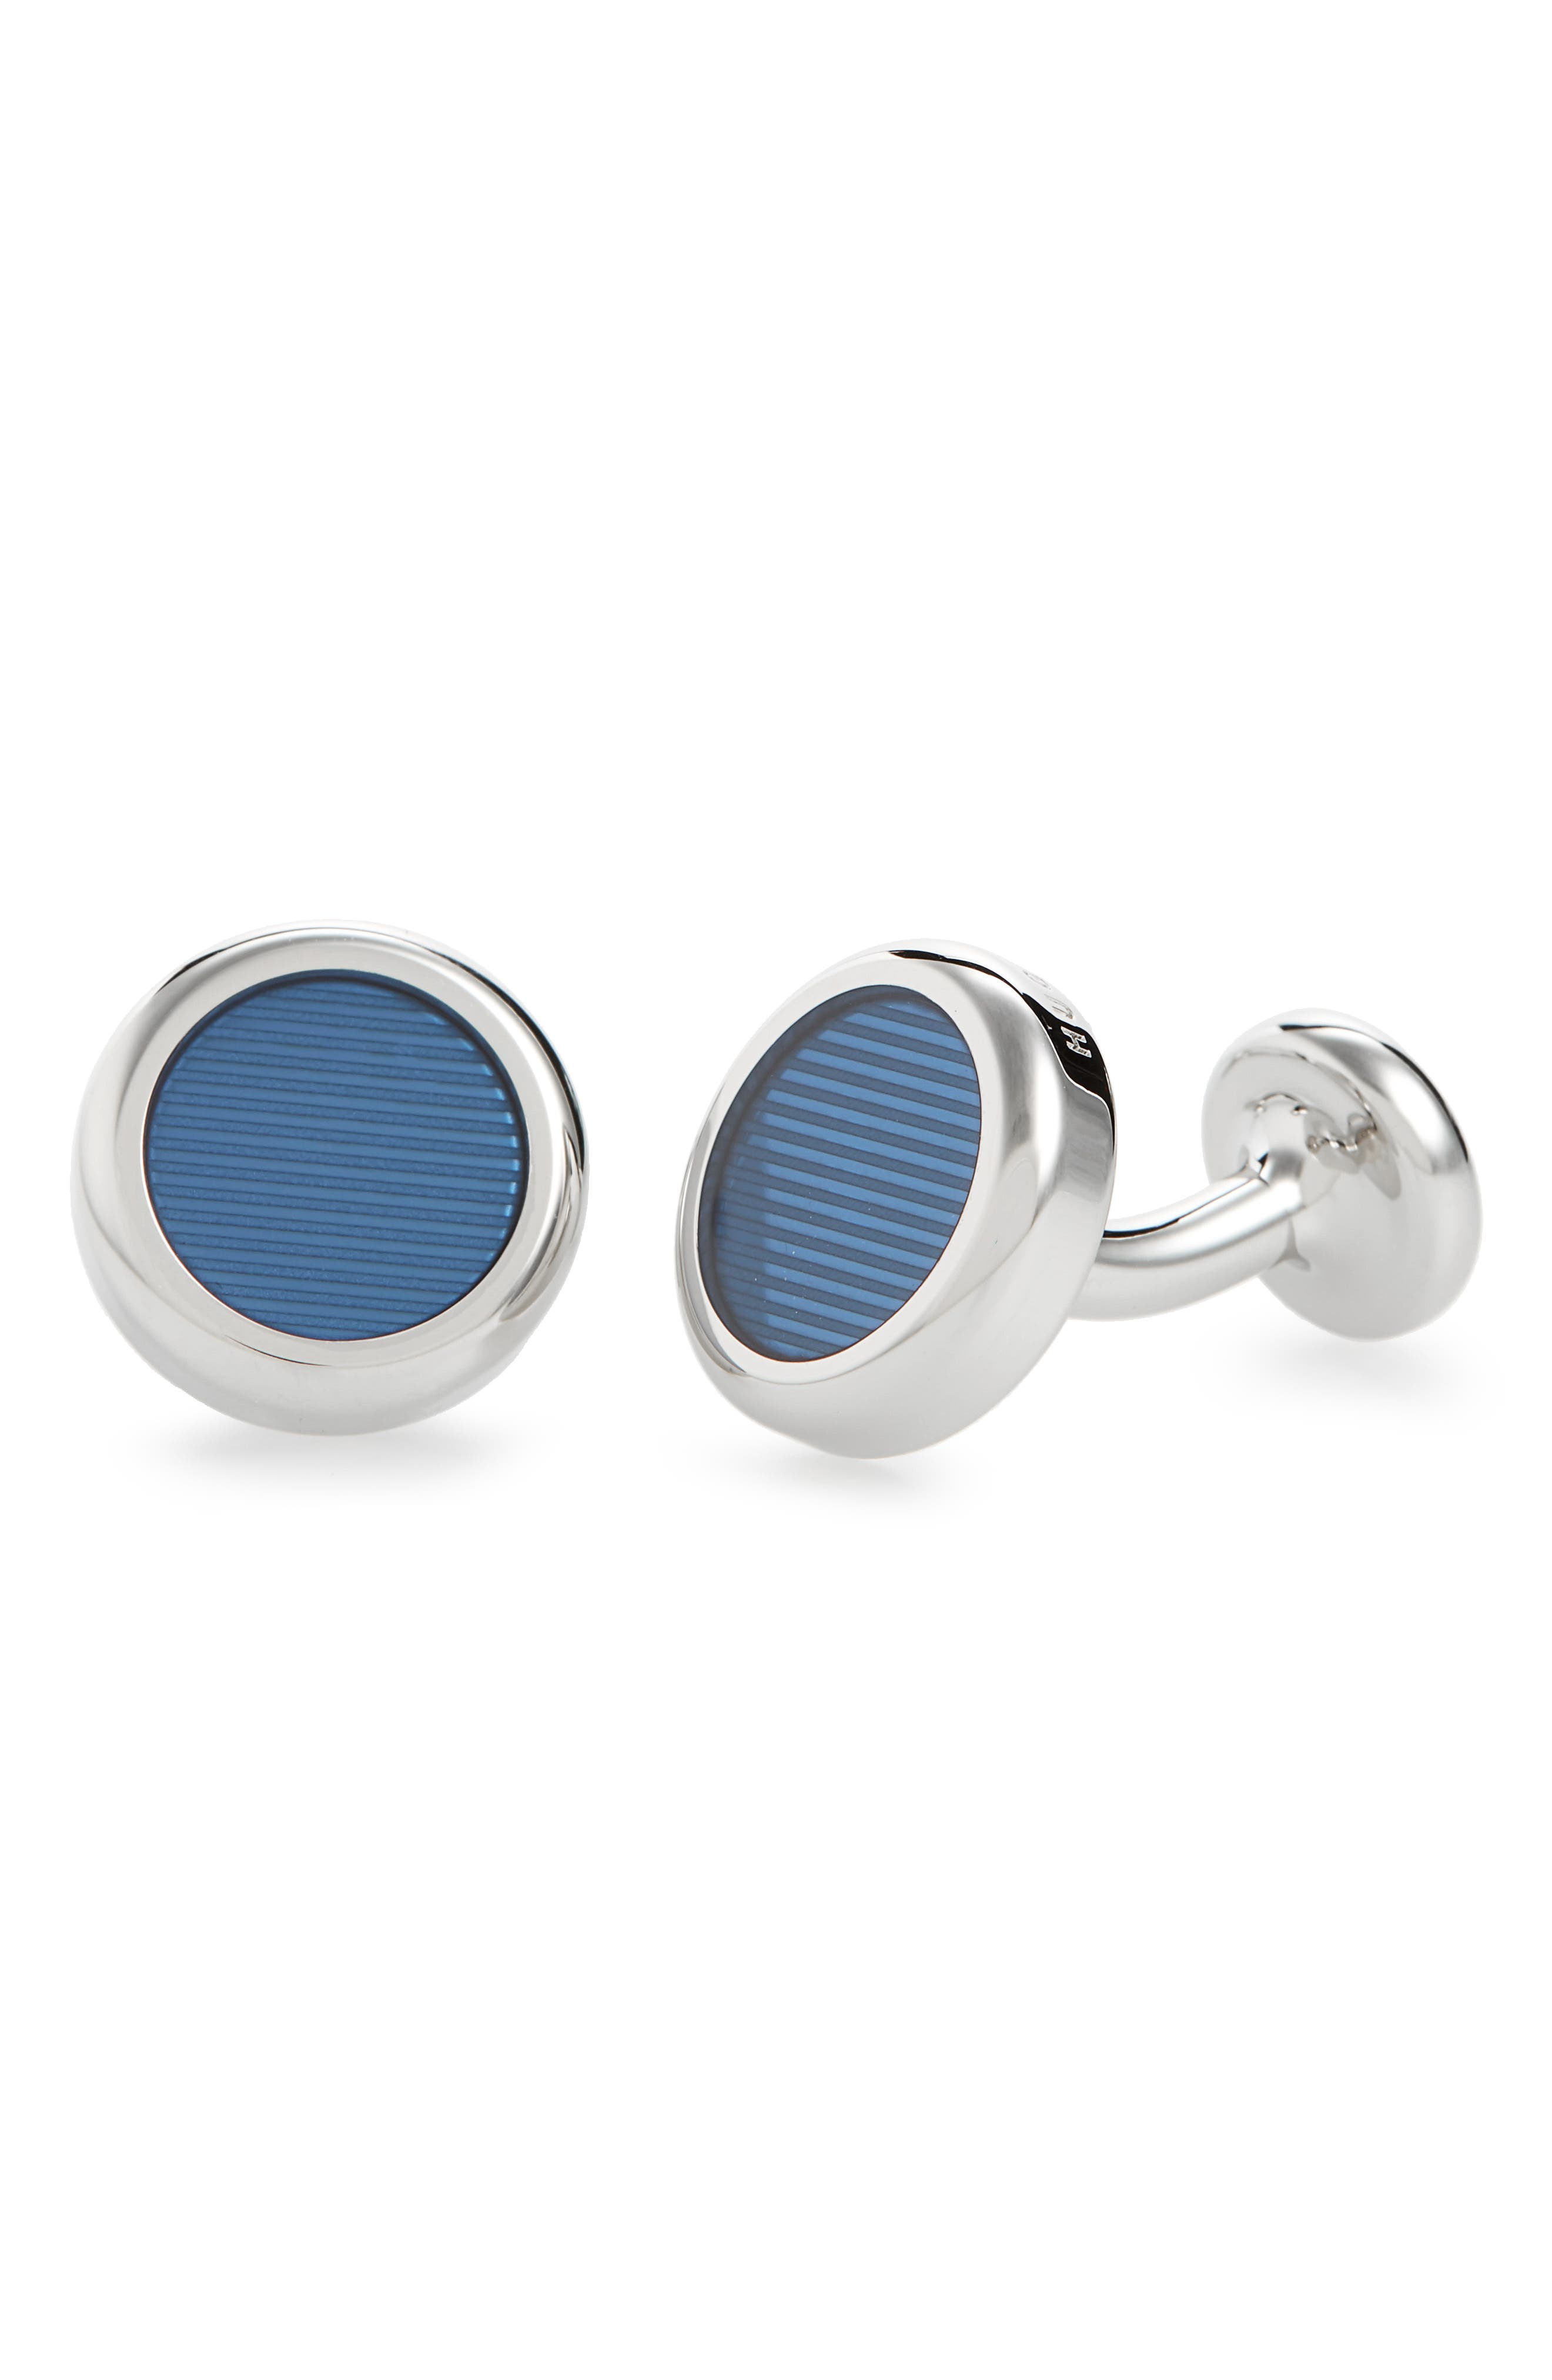 Gil Round Cuff Links,                         Main,                         color, Blue